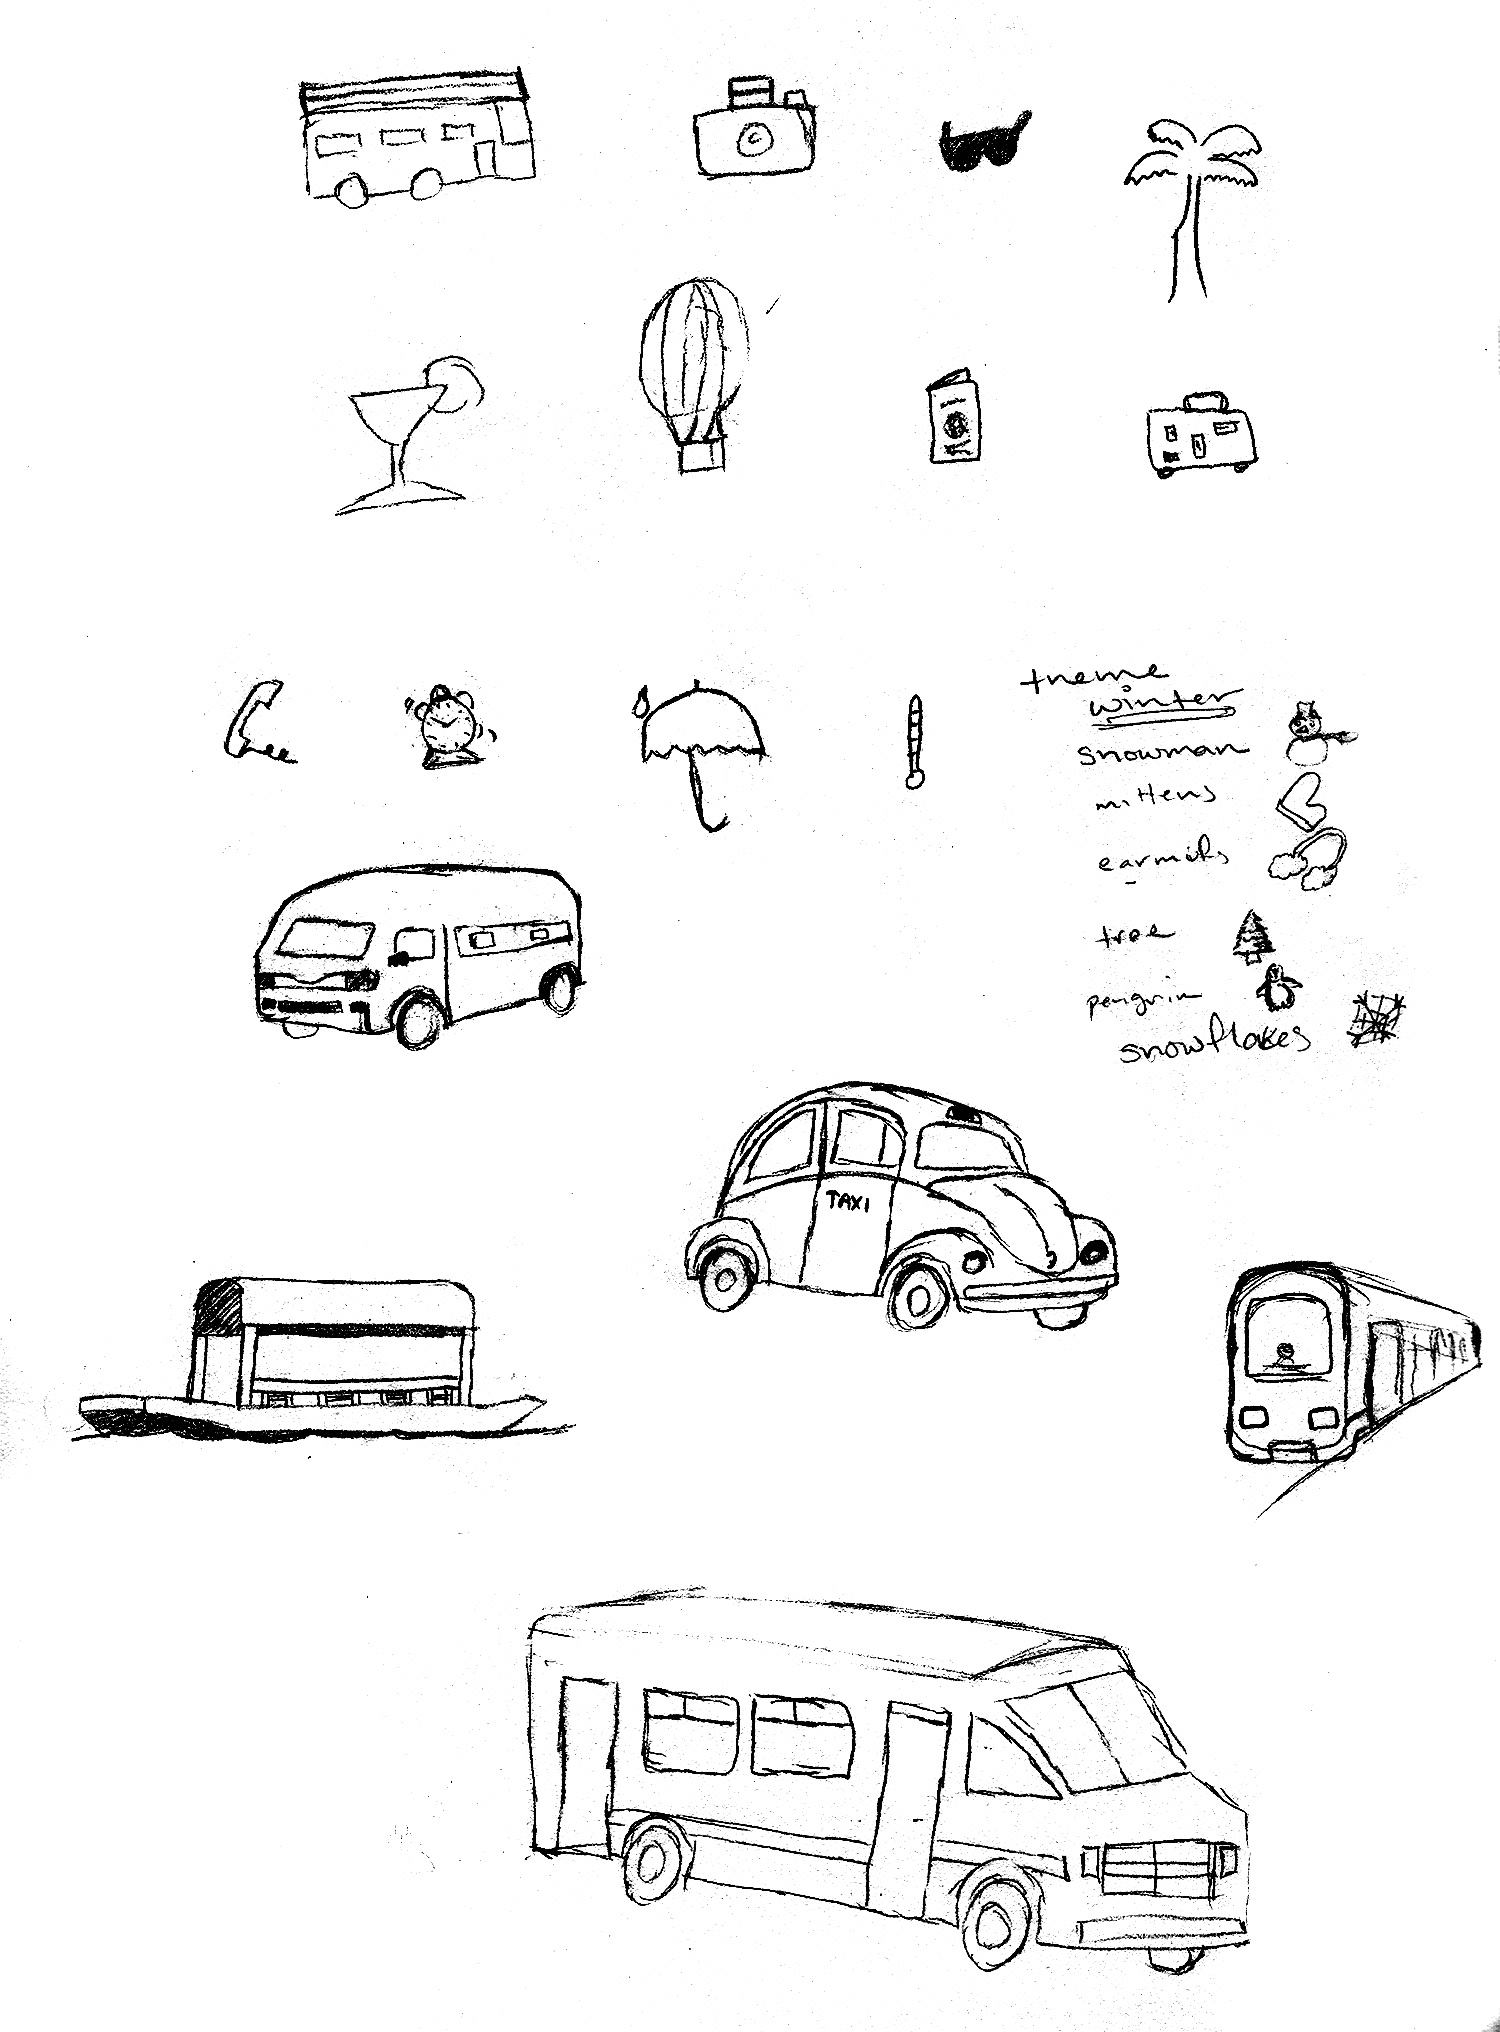 SymbolSketches